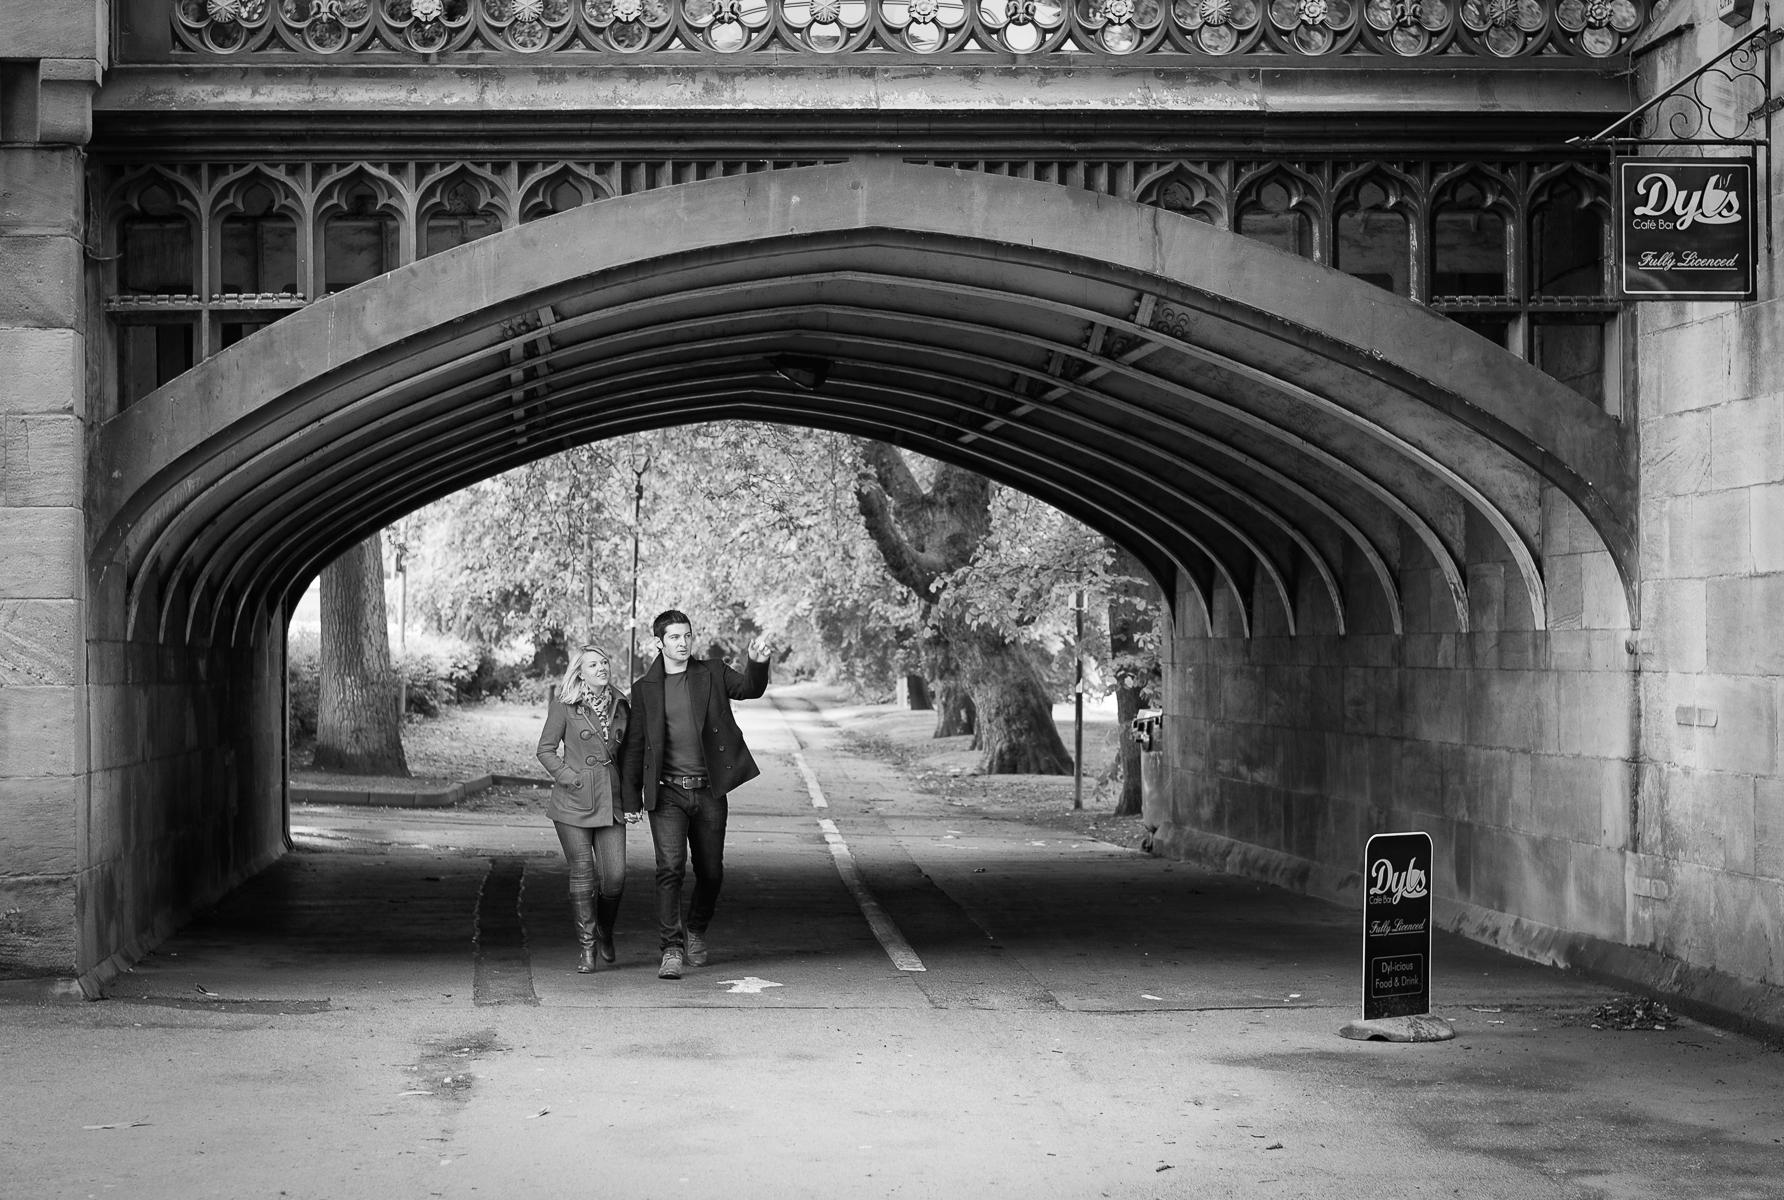 Dyls under Skeldergate Bridge, York : street & stories : TIMOTHY FLOYD PHOTOGRAPHER, NATURE PHOTOGRAPHY, PHOTO ESSAYS, PHOTOJOURNALISM